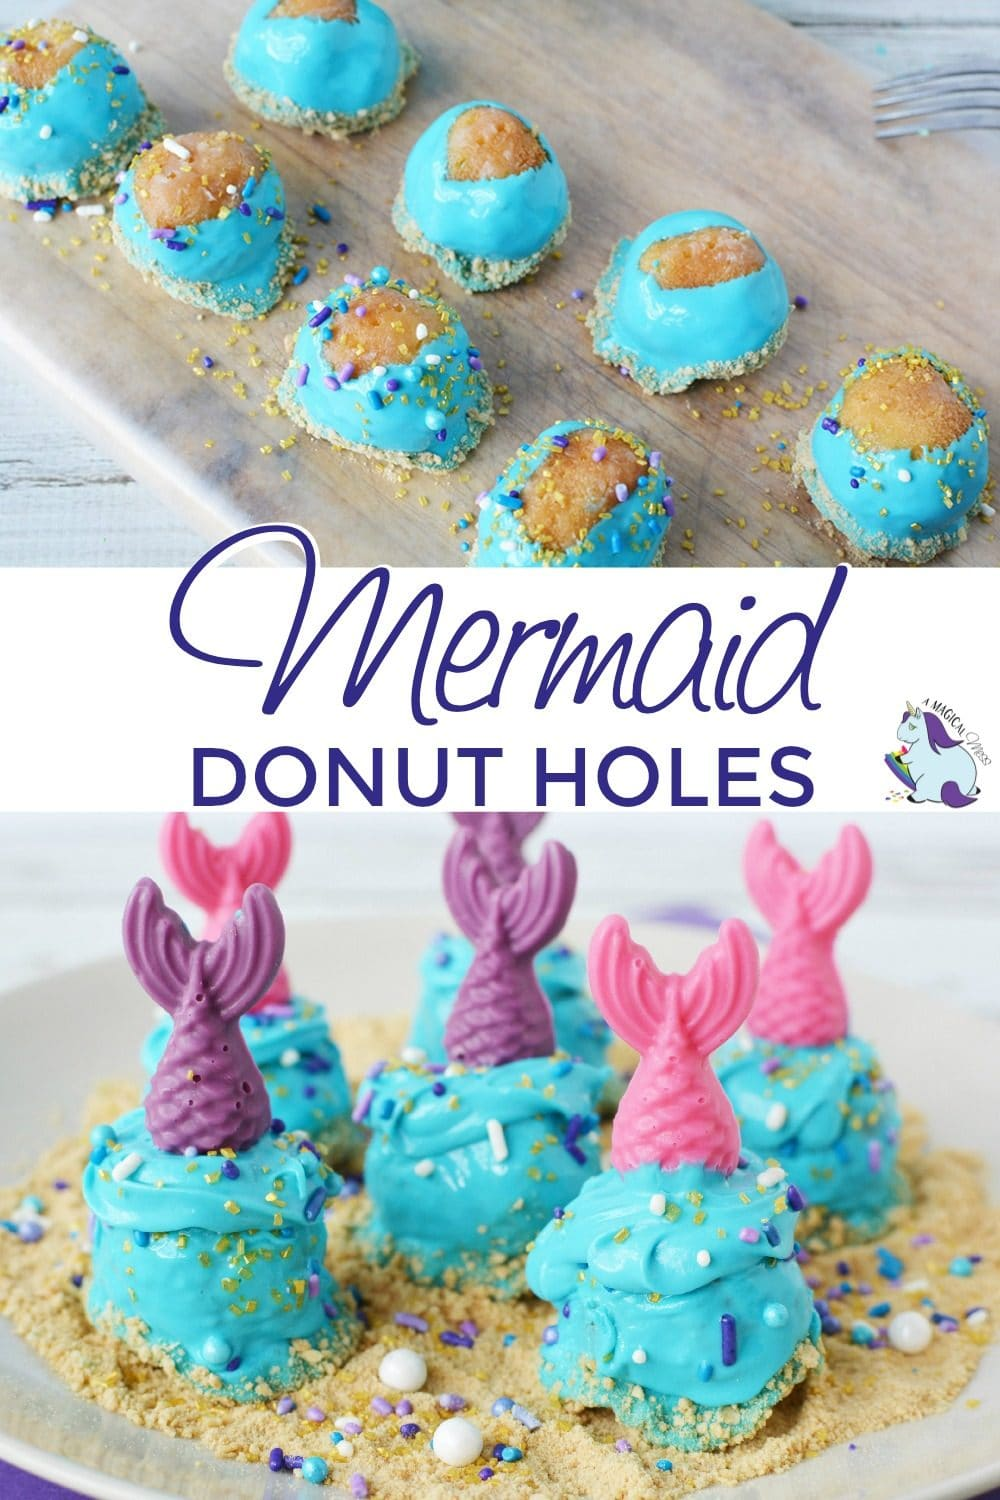 Donuts with mermaid decorations